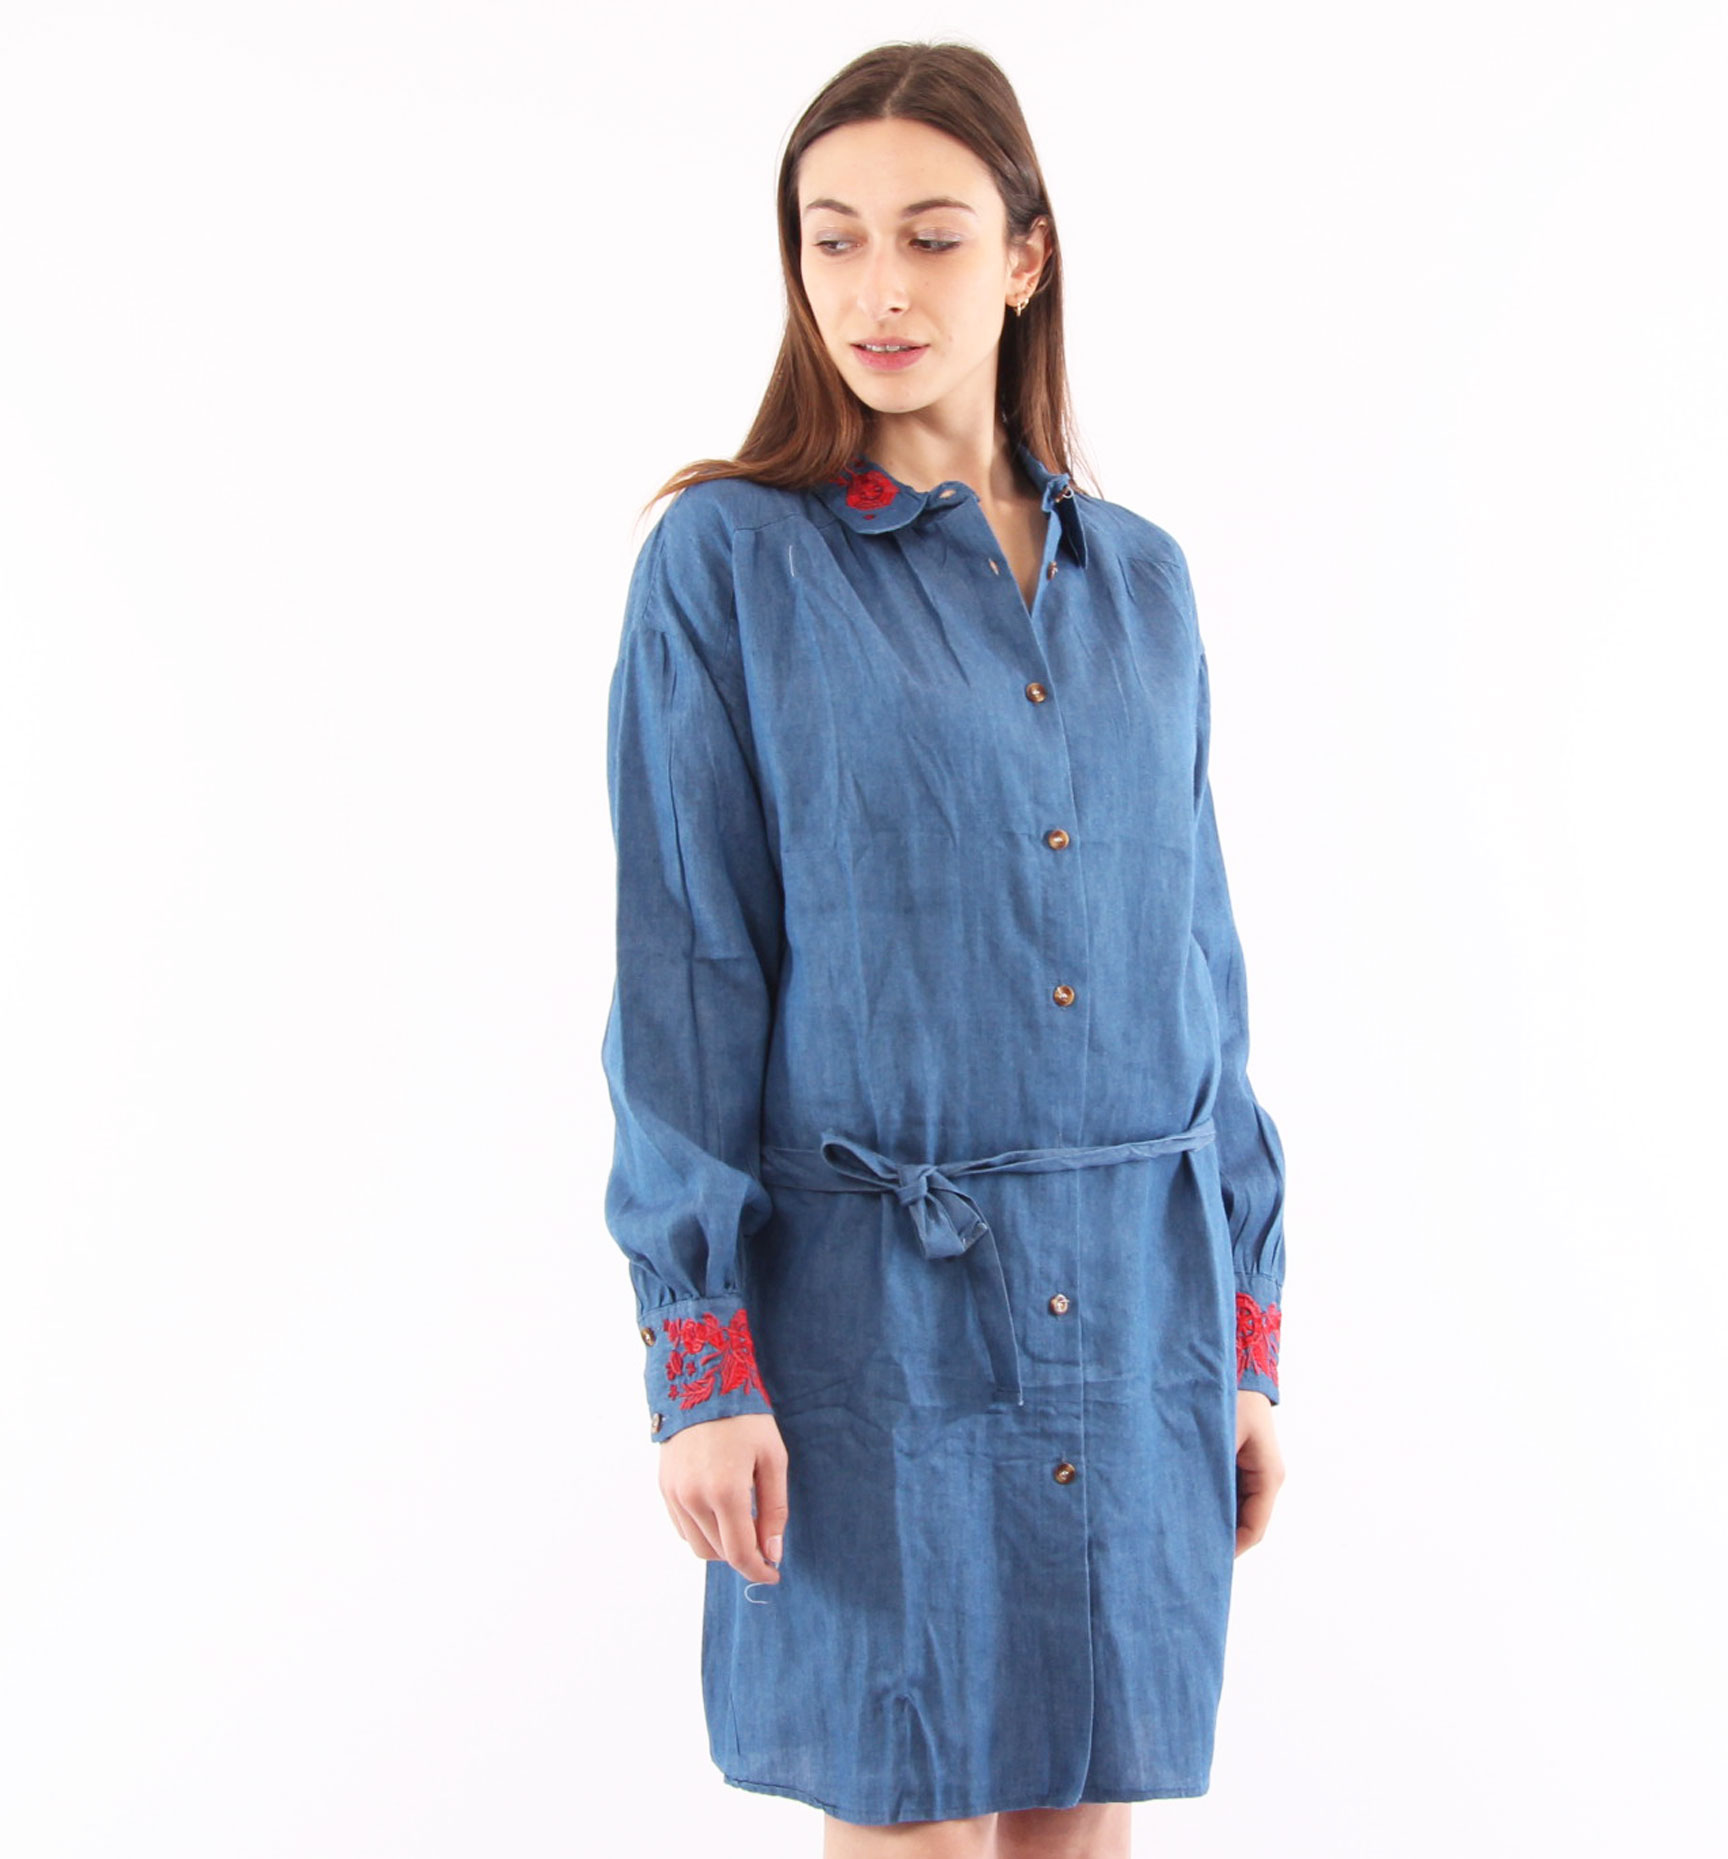 best loved 35b3d 0eda6 CAMICIA LUNGA JEANS CON RICAMI